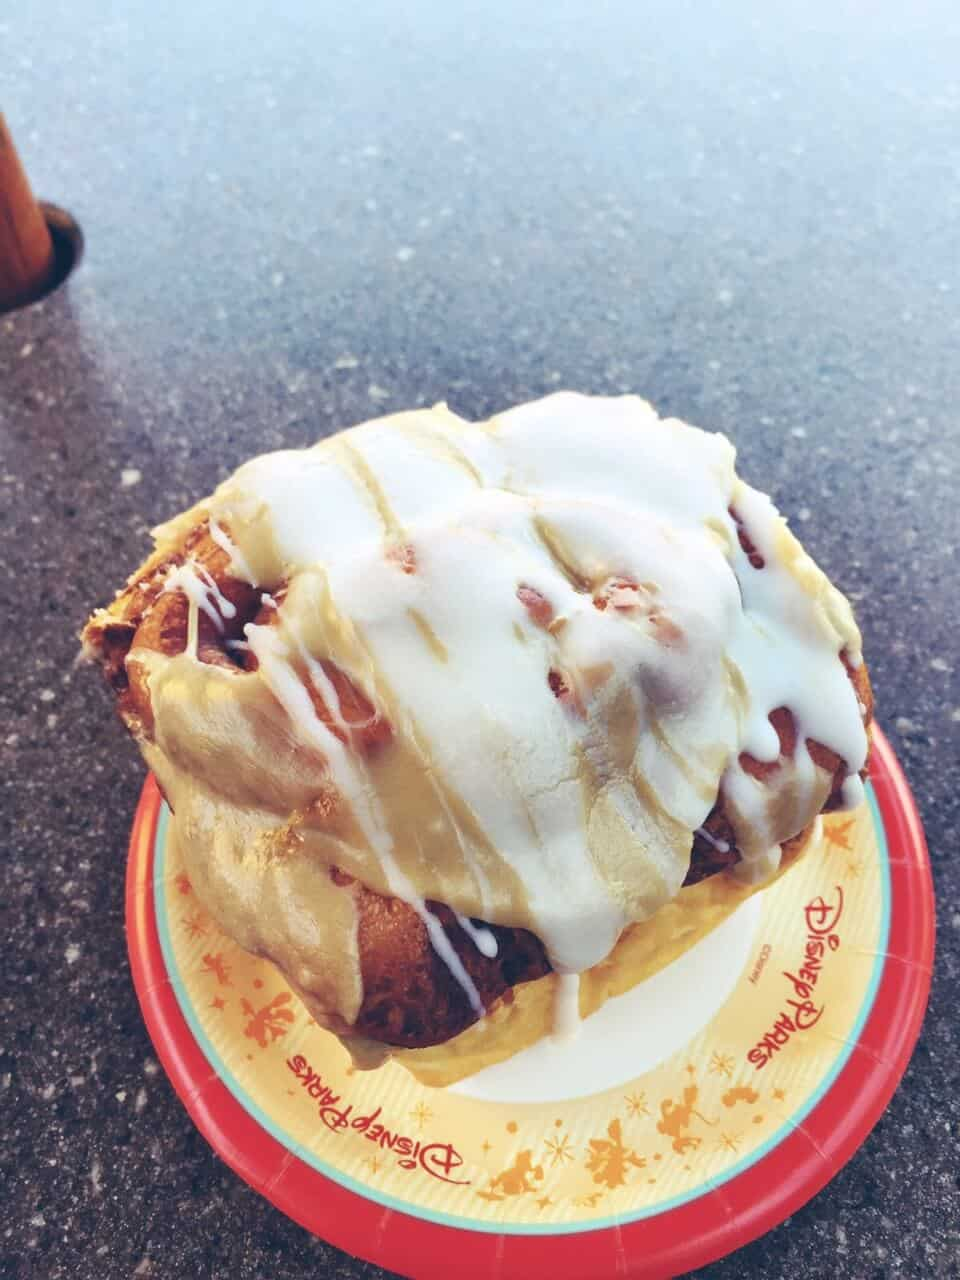 Warm Cinnamon Roll from Gaston's Tavern